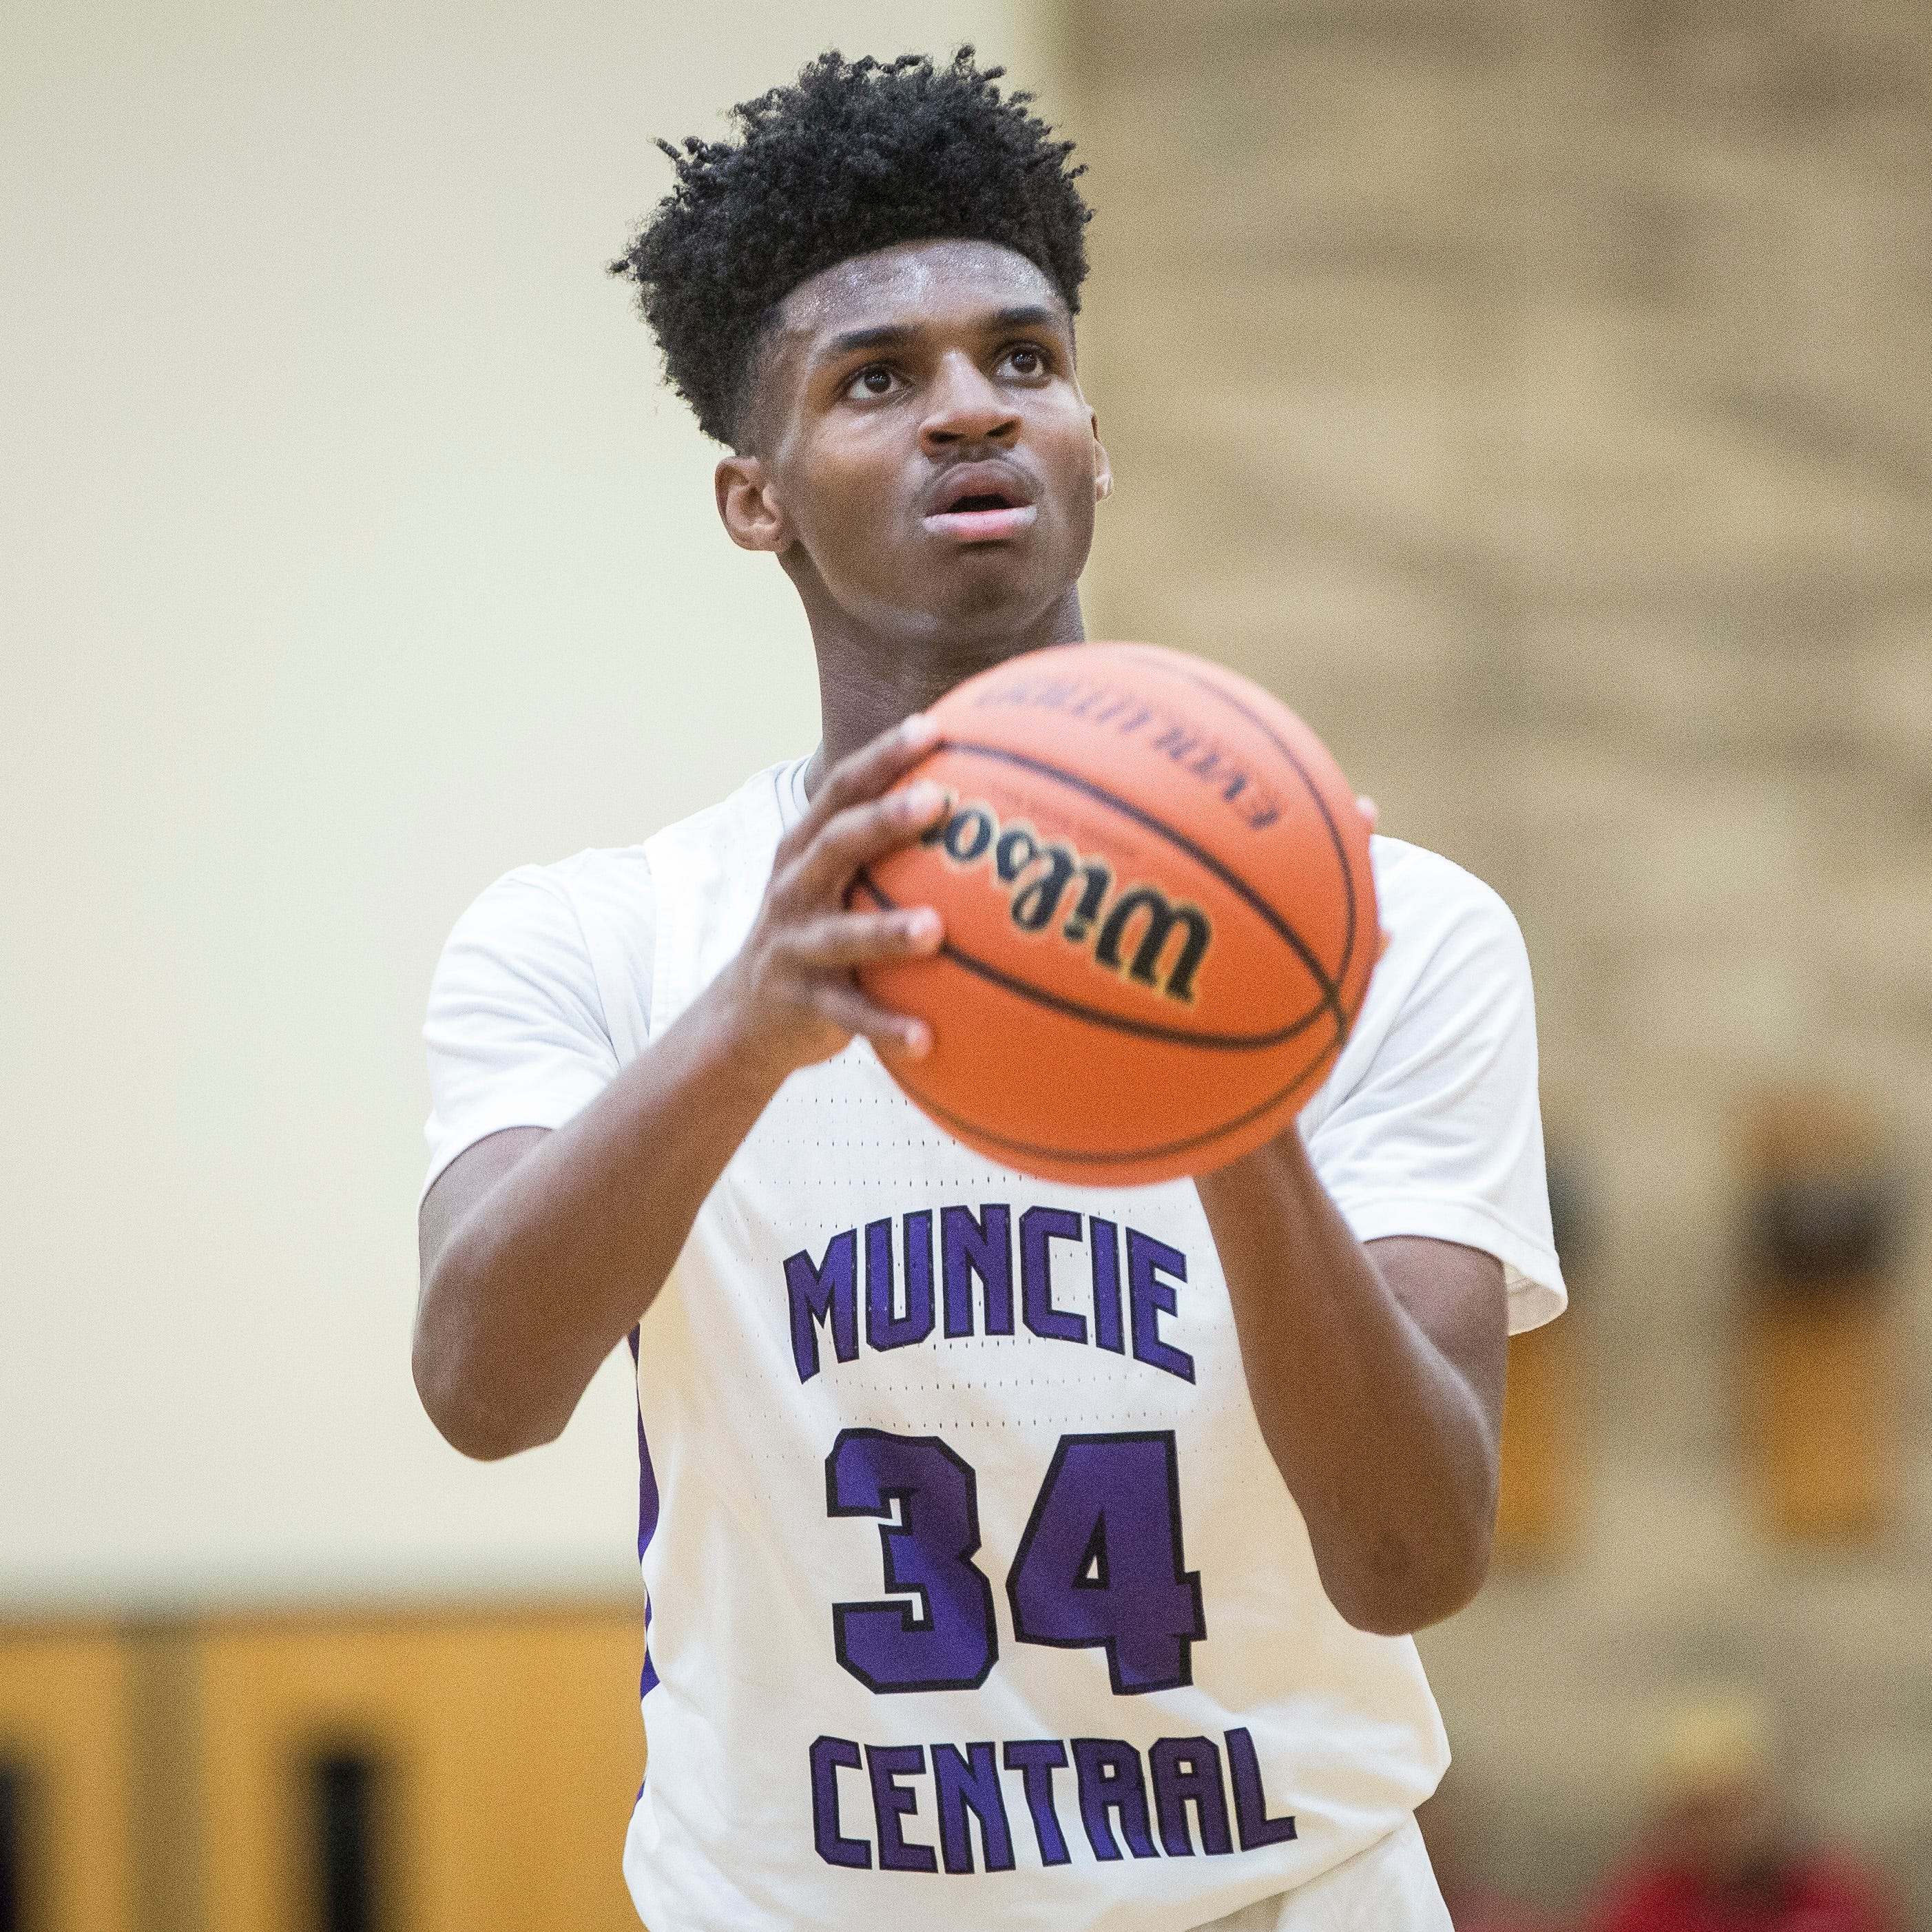 'Got to do what's best for me': Muncie Central's Reggie Bass could go prep school route